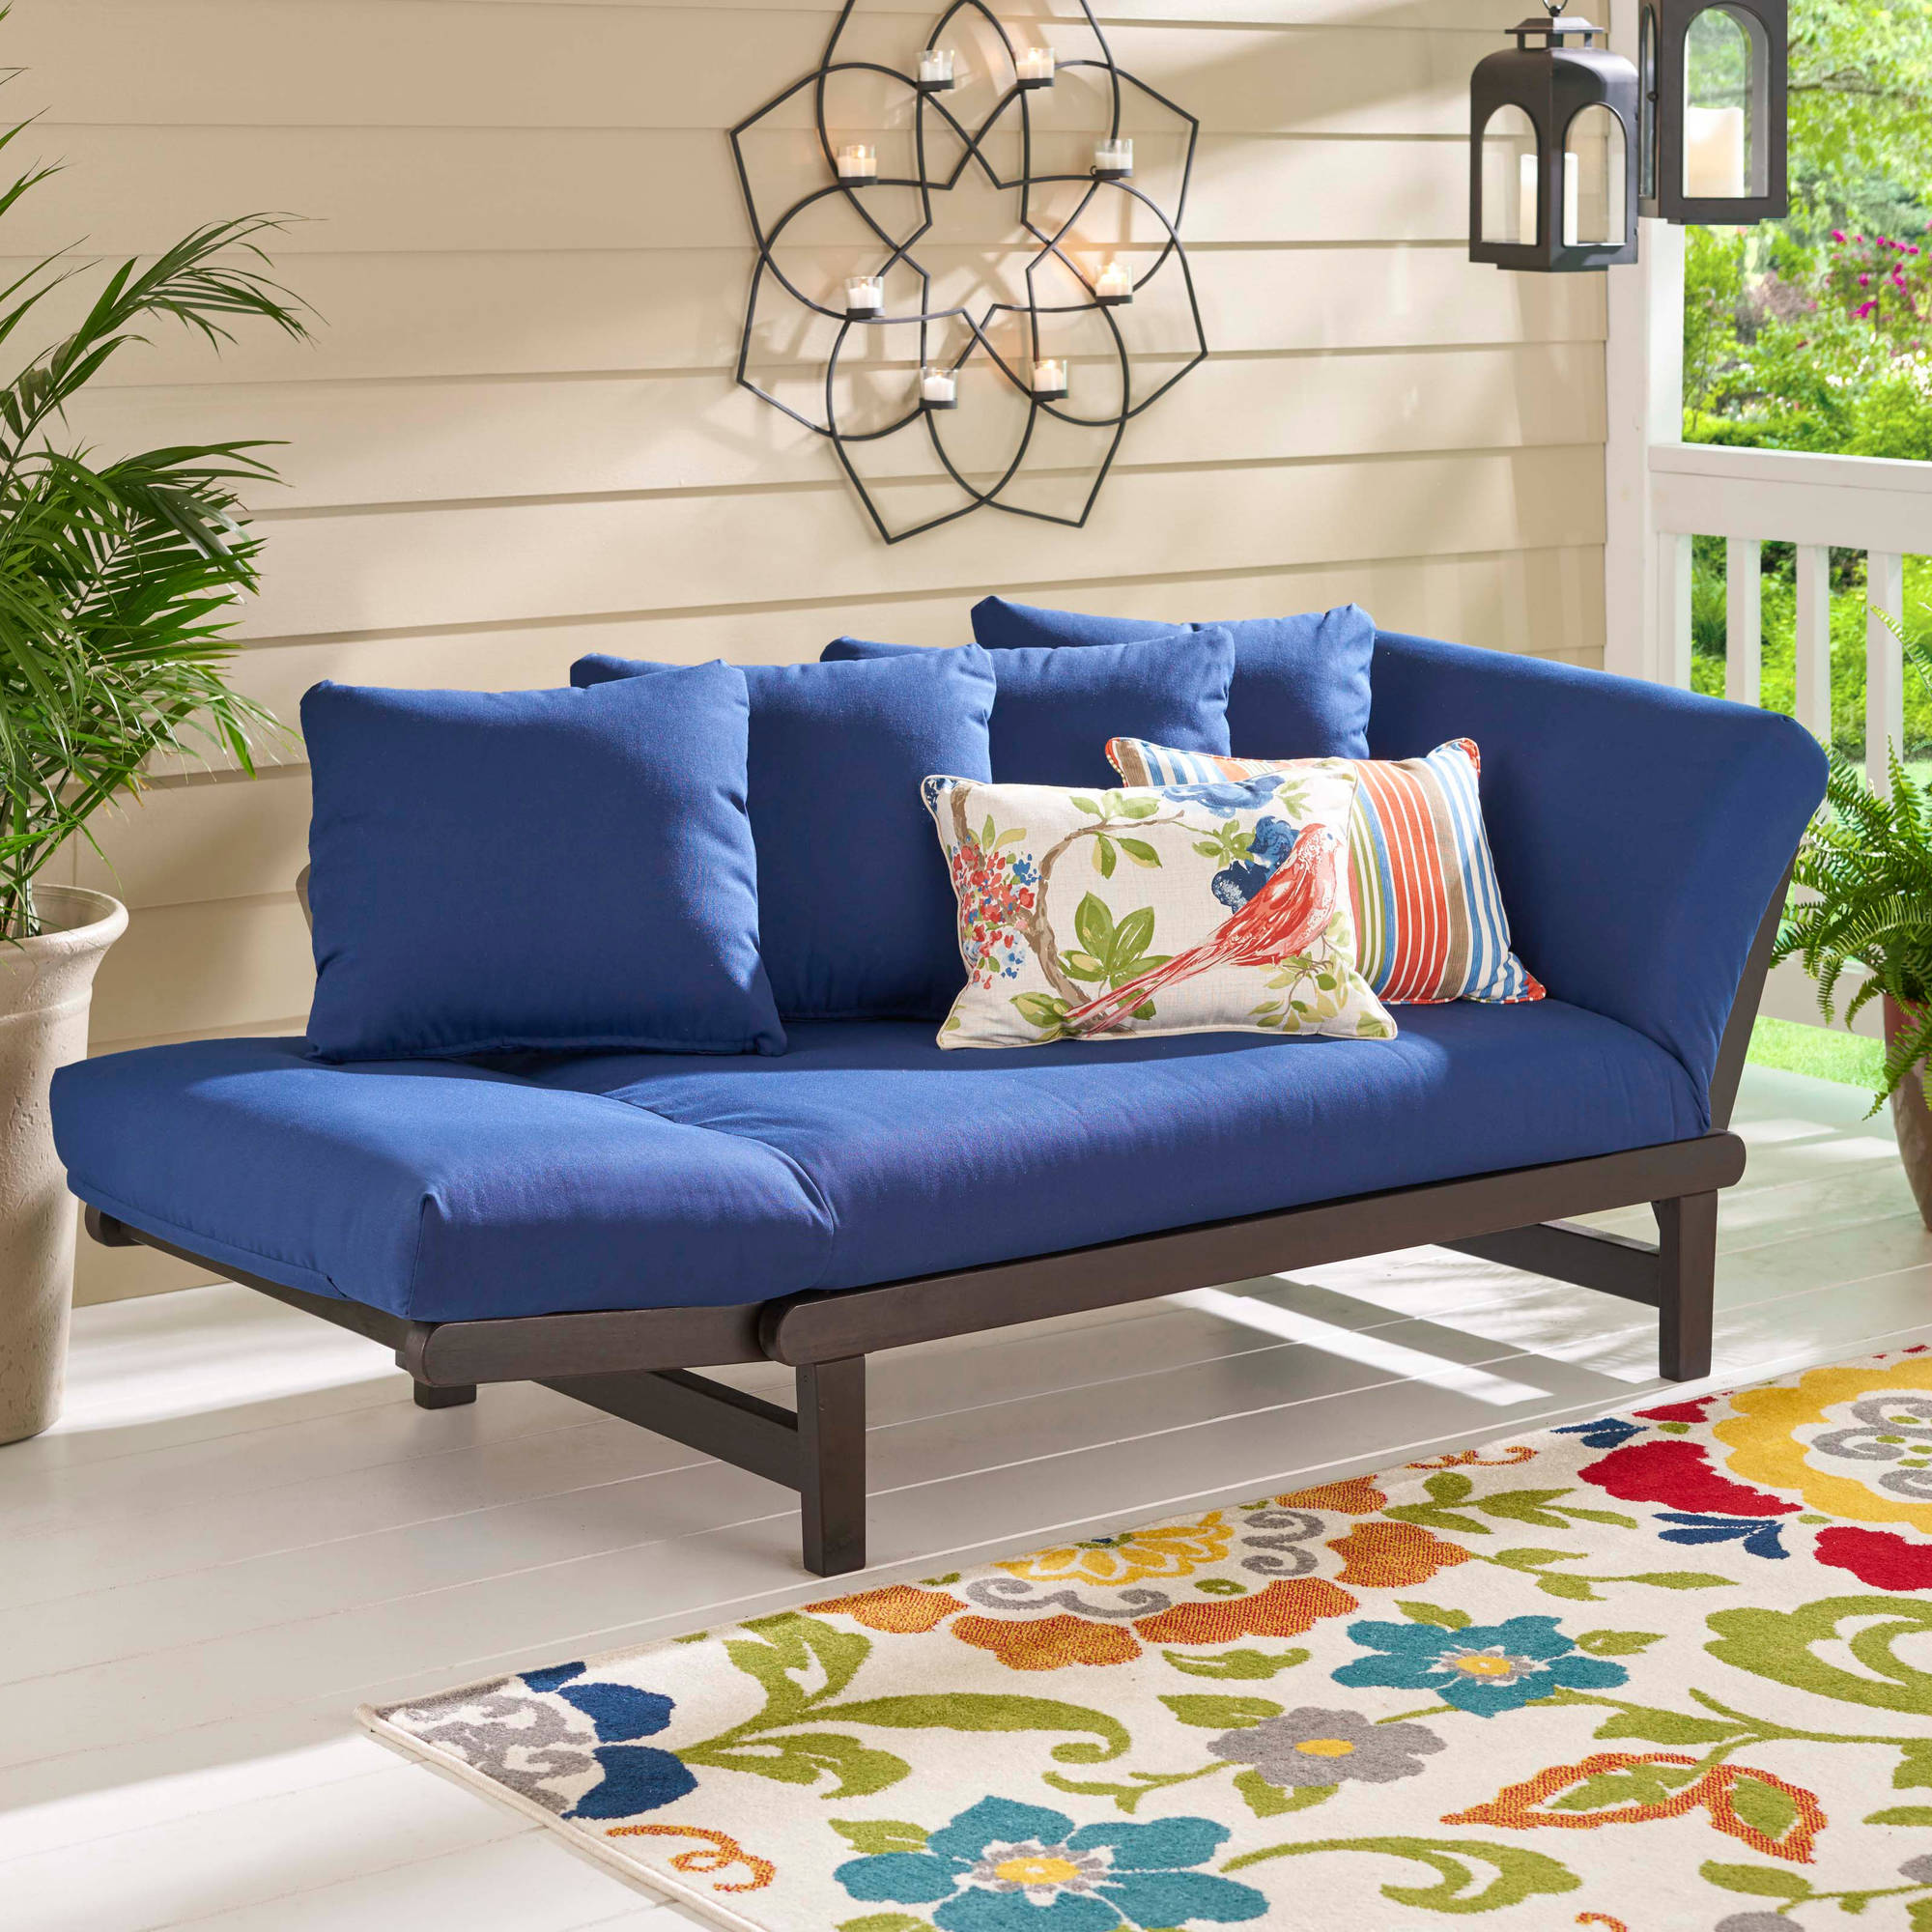 Sofa Bed Fabric Deck Replacement Aecagraorg